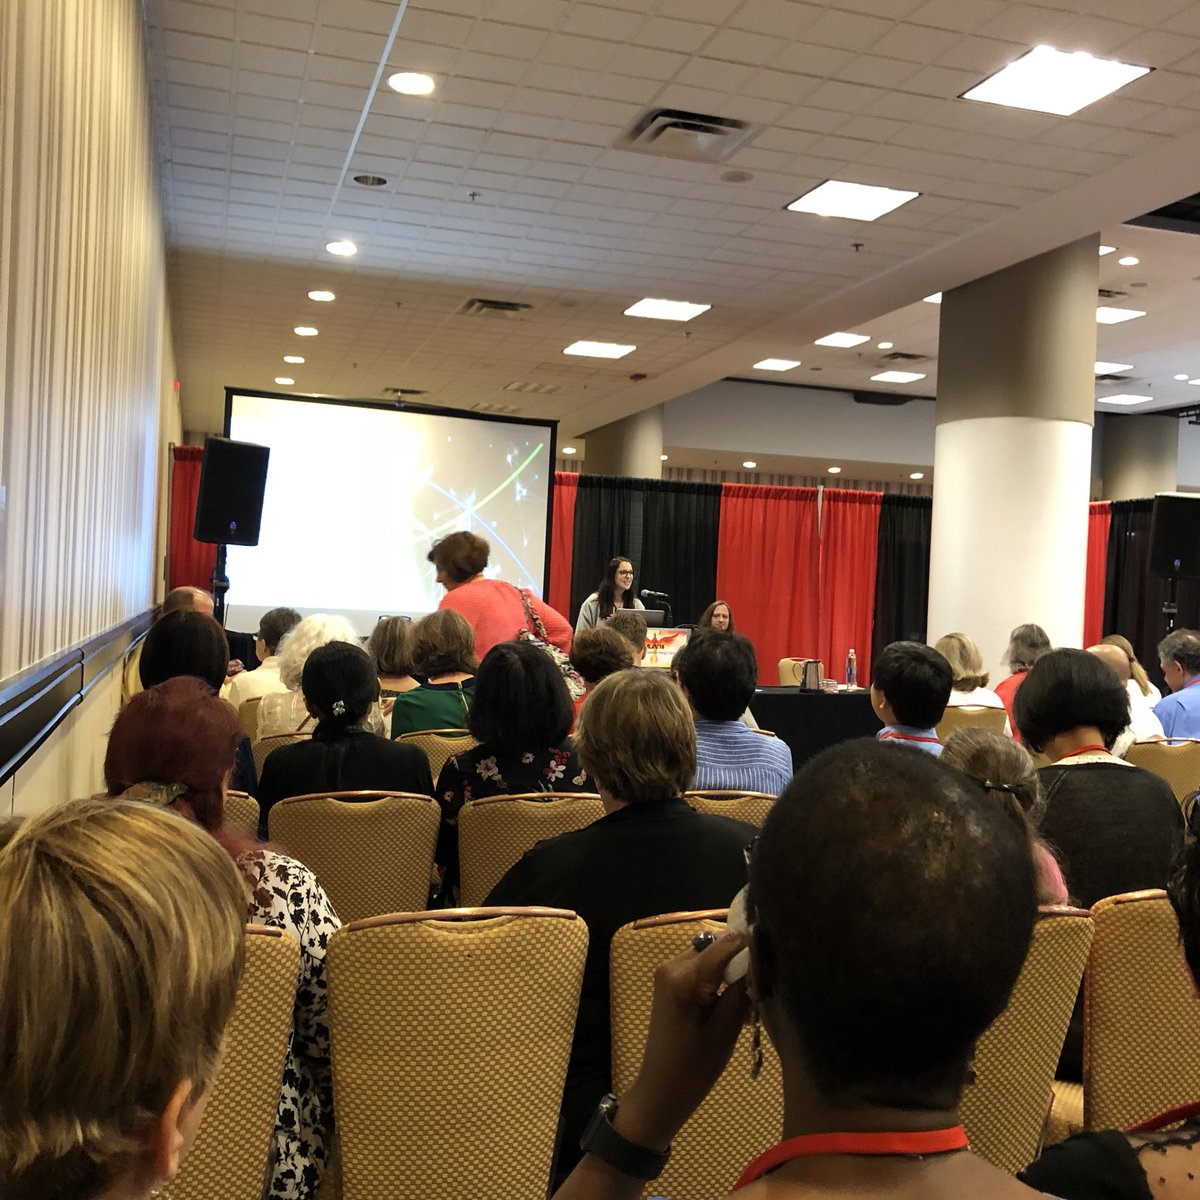 Standing room only again at the Texhnology showcase #Mlanet18 #NEEDMORESPACE #bibliometrics <br>http://pic.twitter.com/xMrNxZDApc